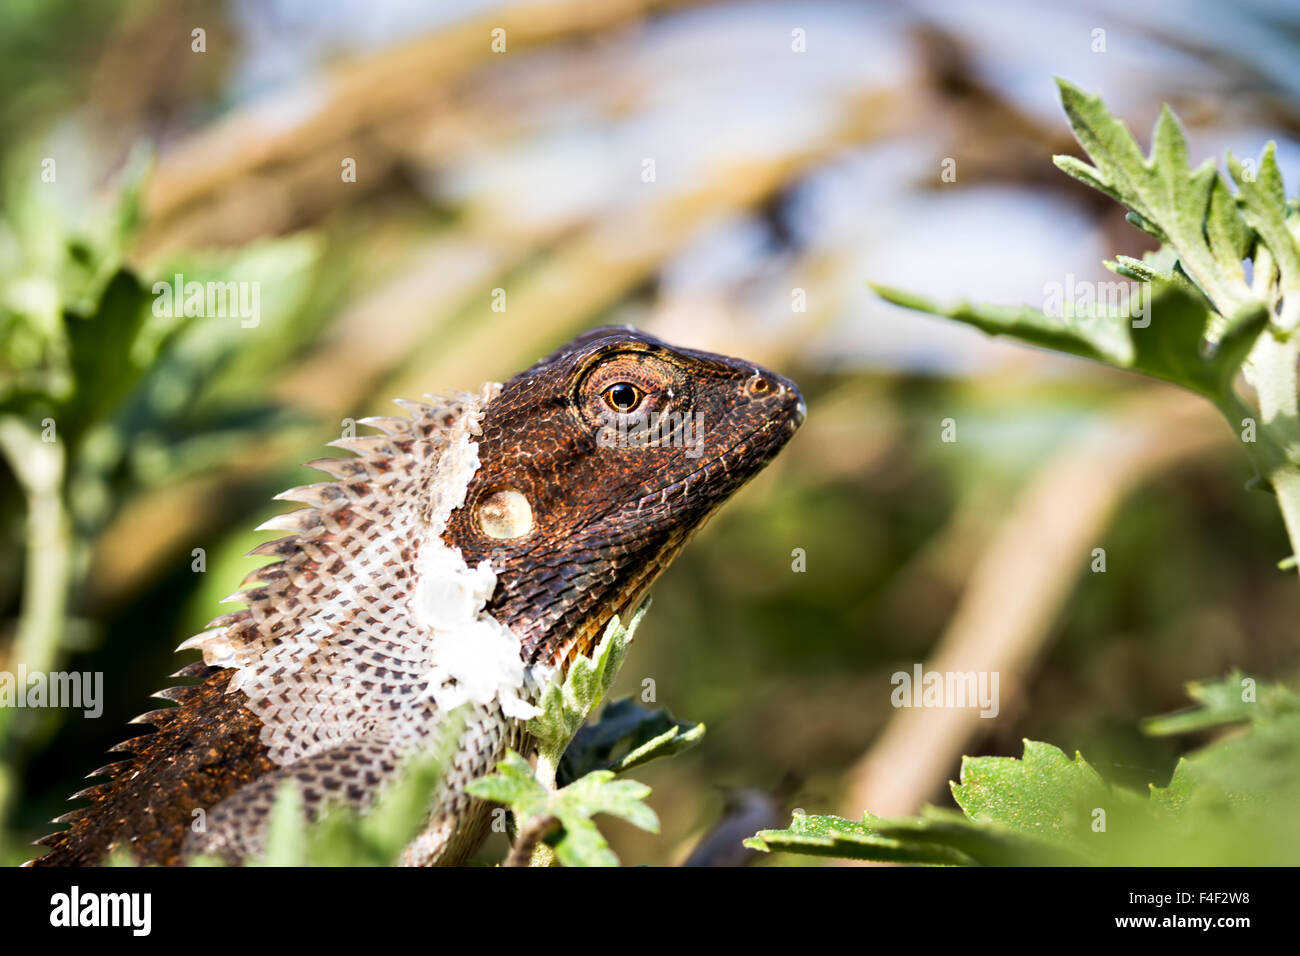 close up of a garden lizard resting and casting off epidermis on a Chrysanthemum plant basking in the morning sun Stock Photo